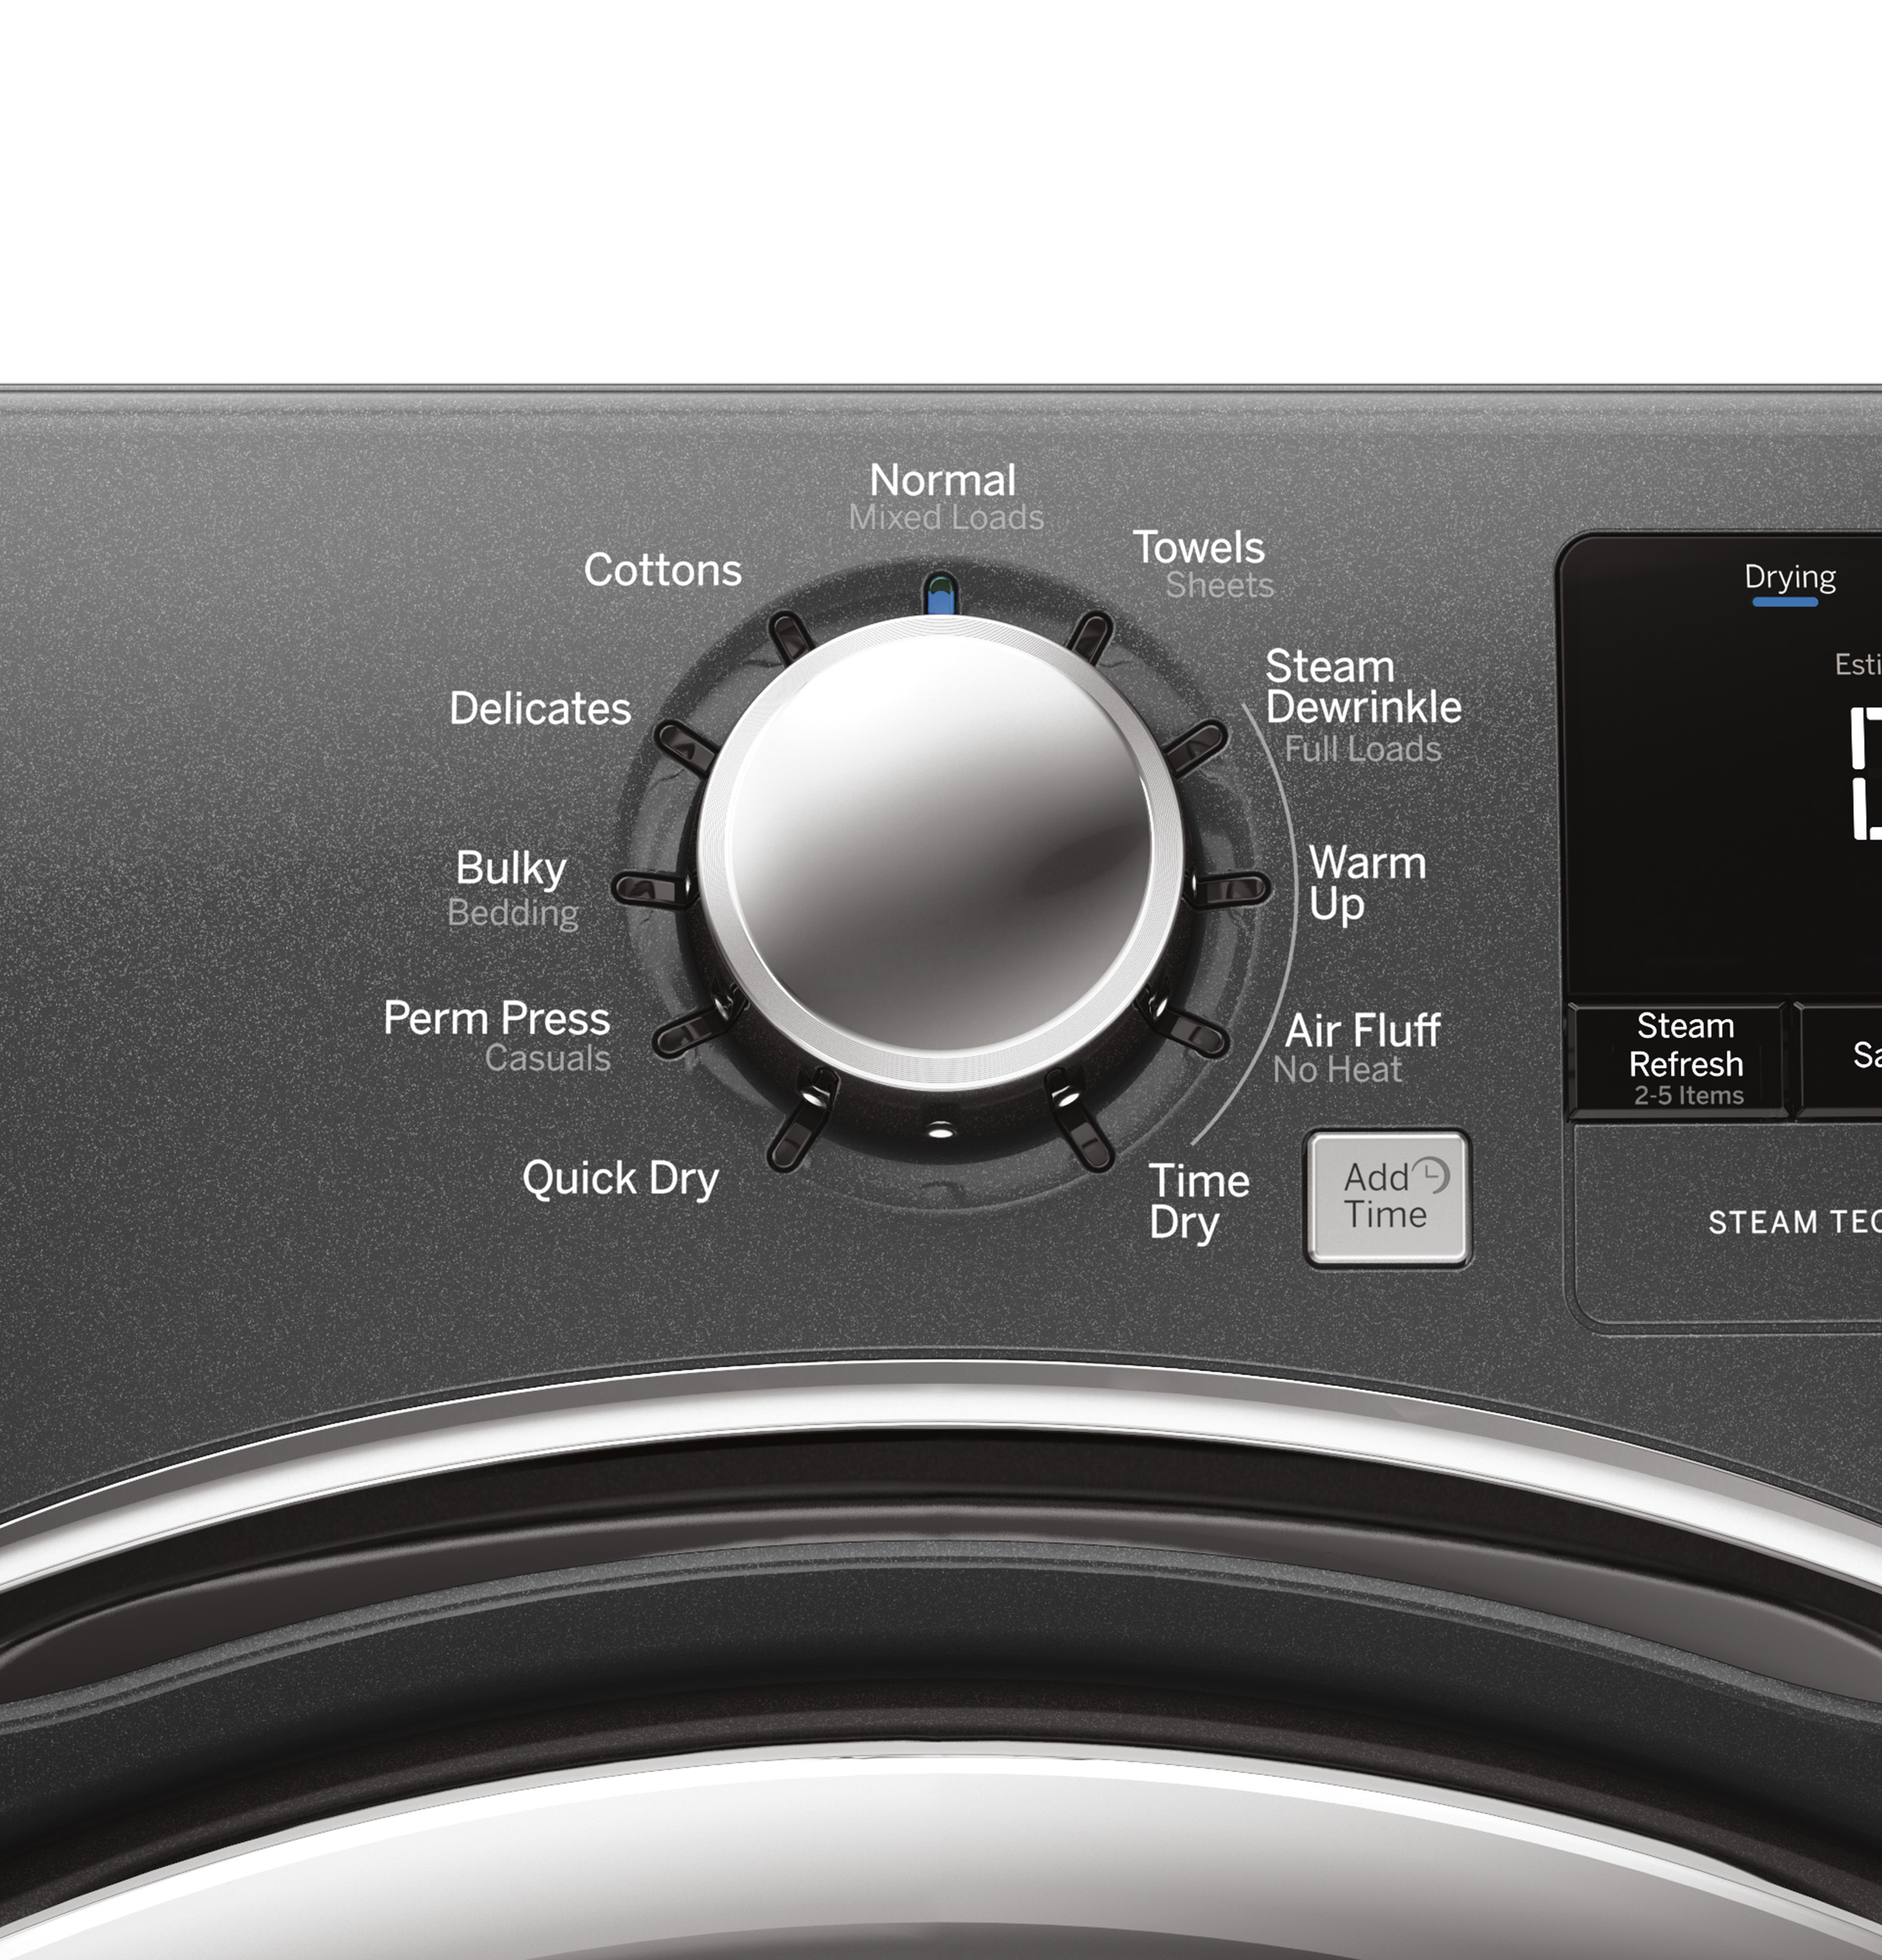 GE Appliances 7.5 cu. ft. Front-Load Electric Dryer w/ Steam - Diamond Gray GFDS175EHDG